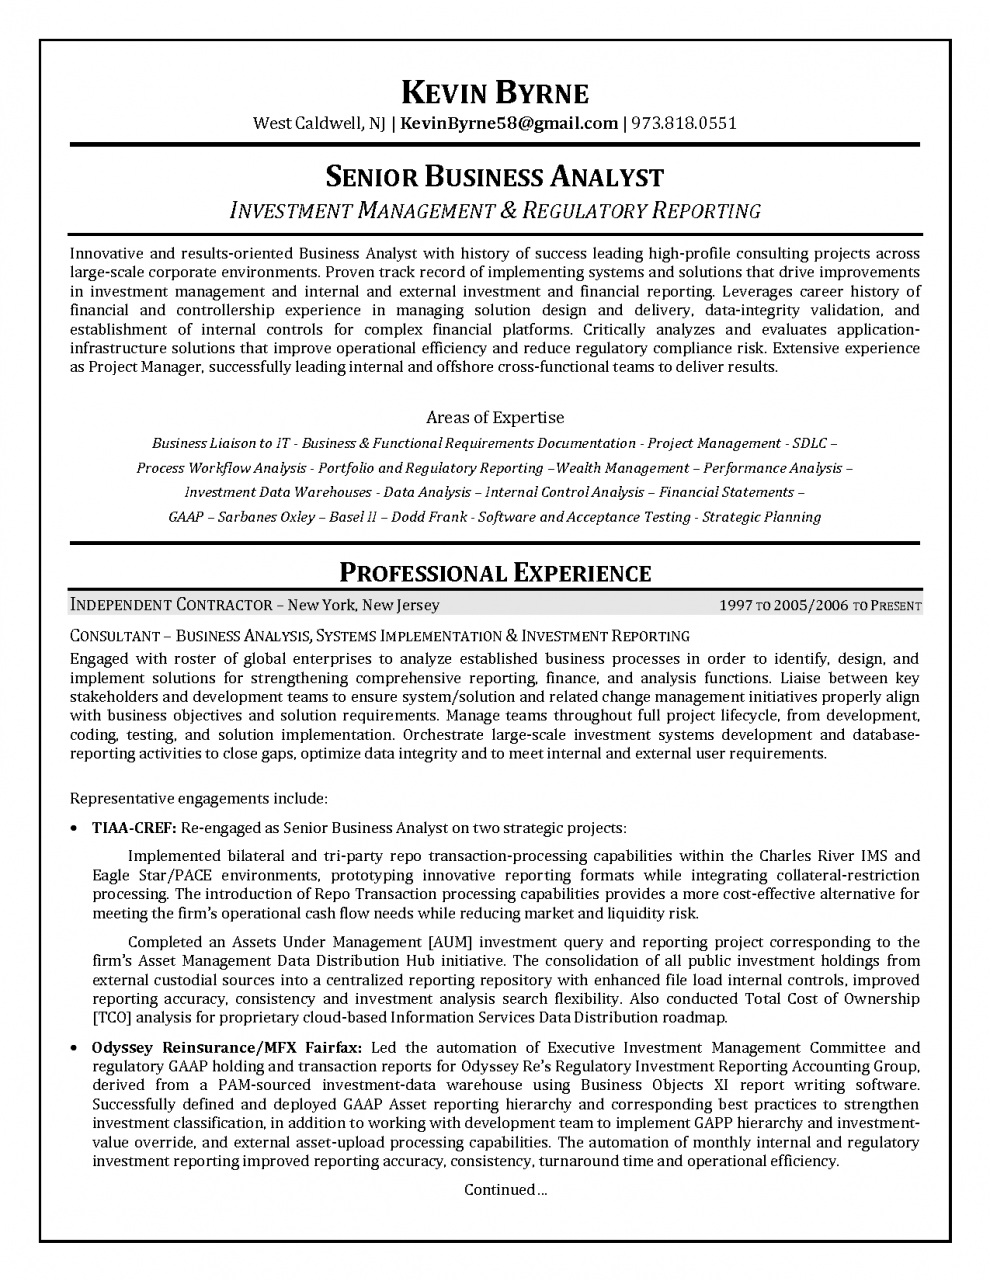 Business Analyst Resume Sample Interesting Resumesenior Business Analyst Resume Format Business Analyst